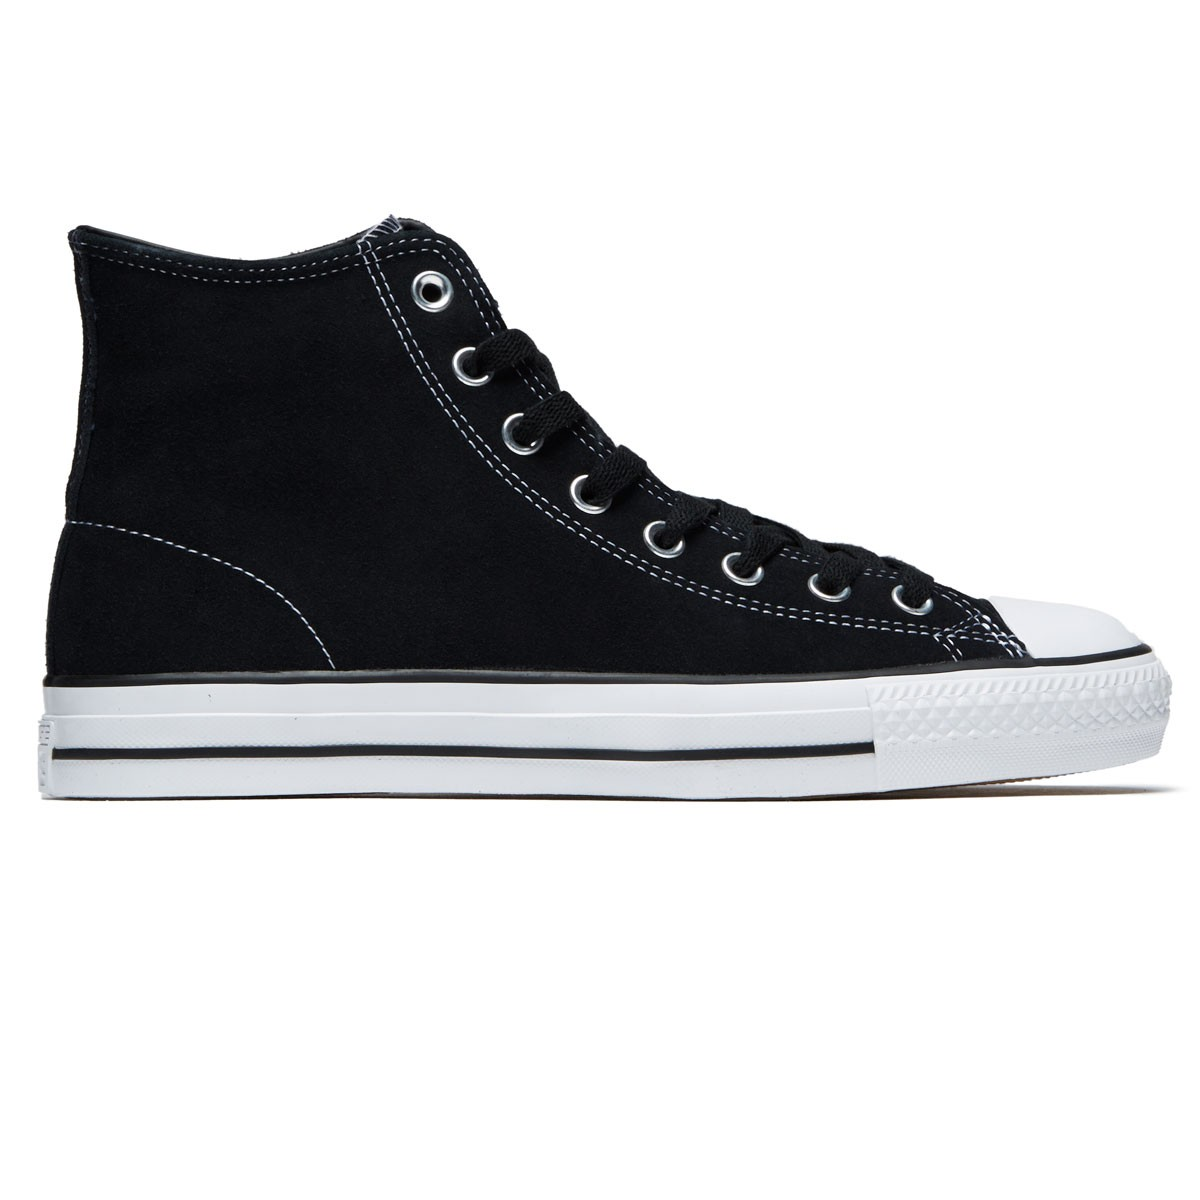 d6a25ed7d156 Converse Zoom Air CTAS Pro Hi Shoes - Black Black White